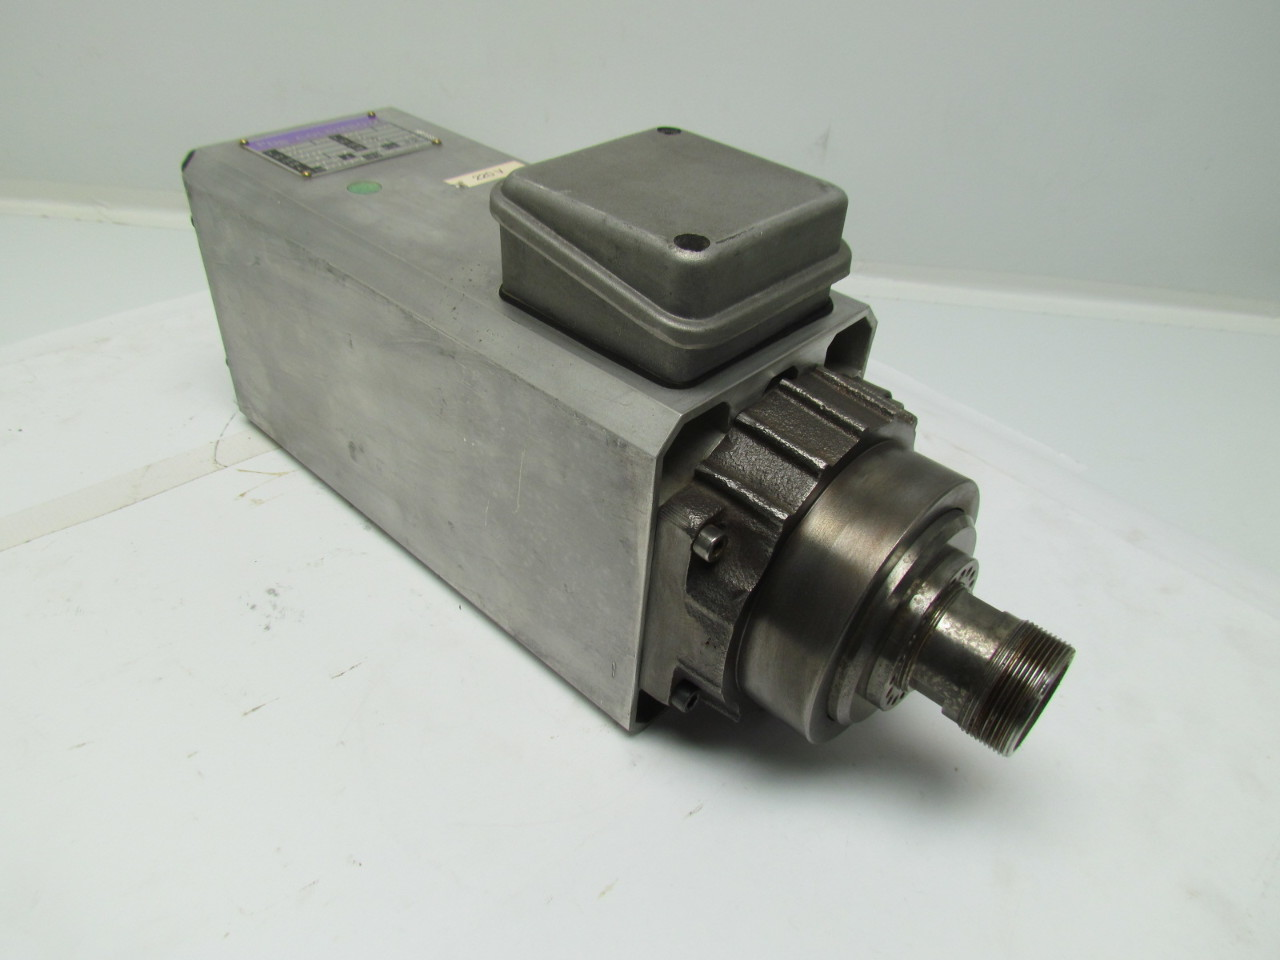 Pds colombo rv110 2 high speed spindle collet motor 10 2hp for High speed spindle motors